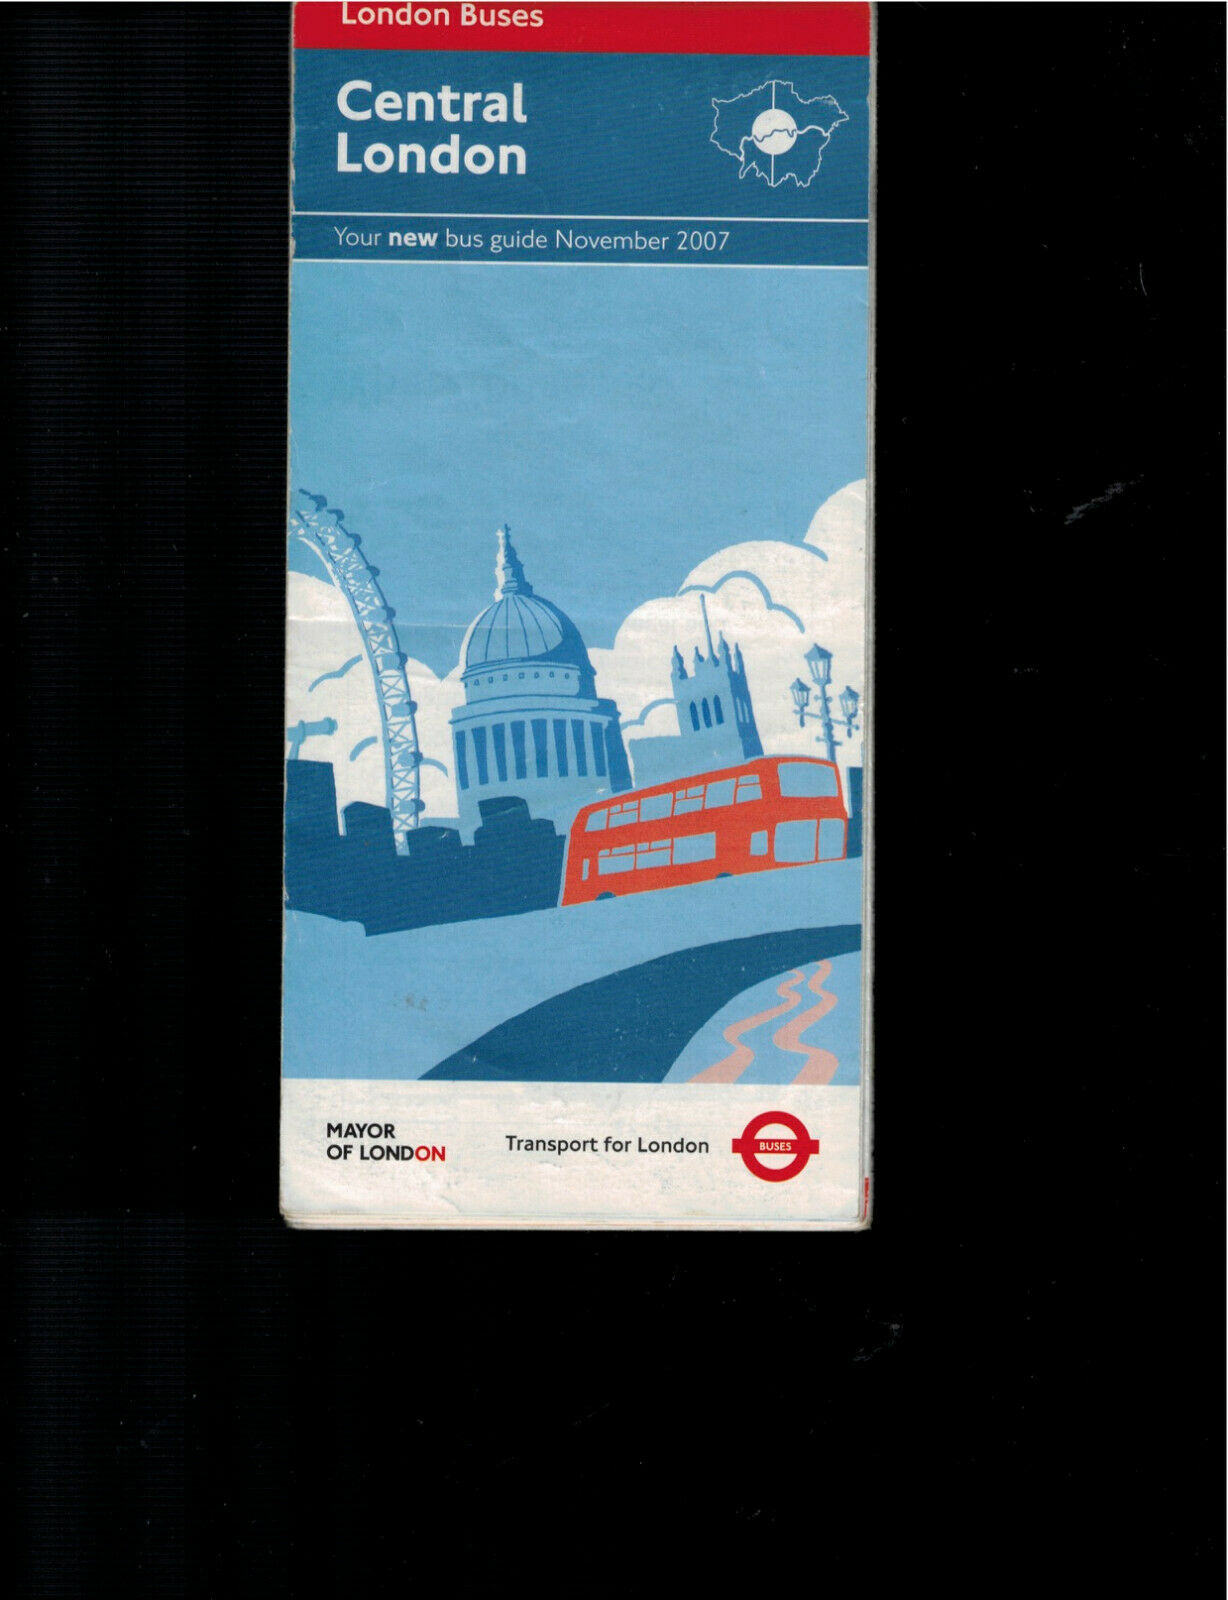 CENTRAL LONDON MAP AND BUS GUIDE - $1.75